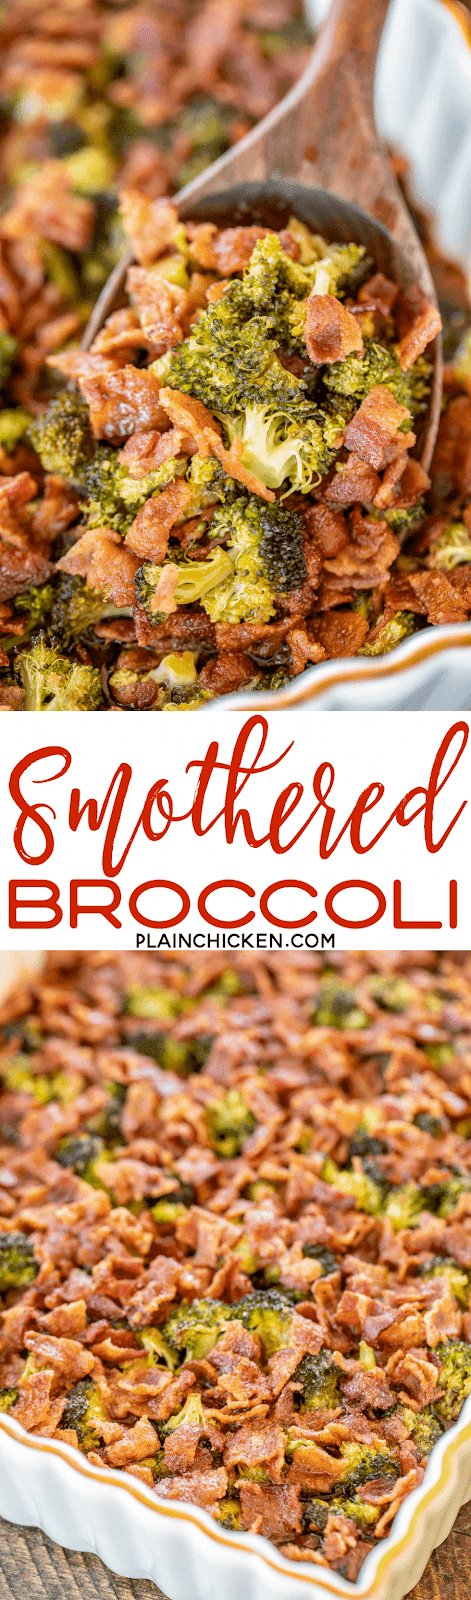 Smothered Broccoli - fresh broccoli baked in bacon, brown sugar, butter, soy sauce and garlic. This is the most requested broccoli recipe in our house.Everybody gets seconds. SO good!! Great for a potluck. Everyone asks for the recipe! Super easy to make too! #broccoli #bacon #casserole #recipe